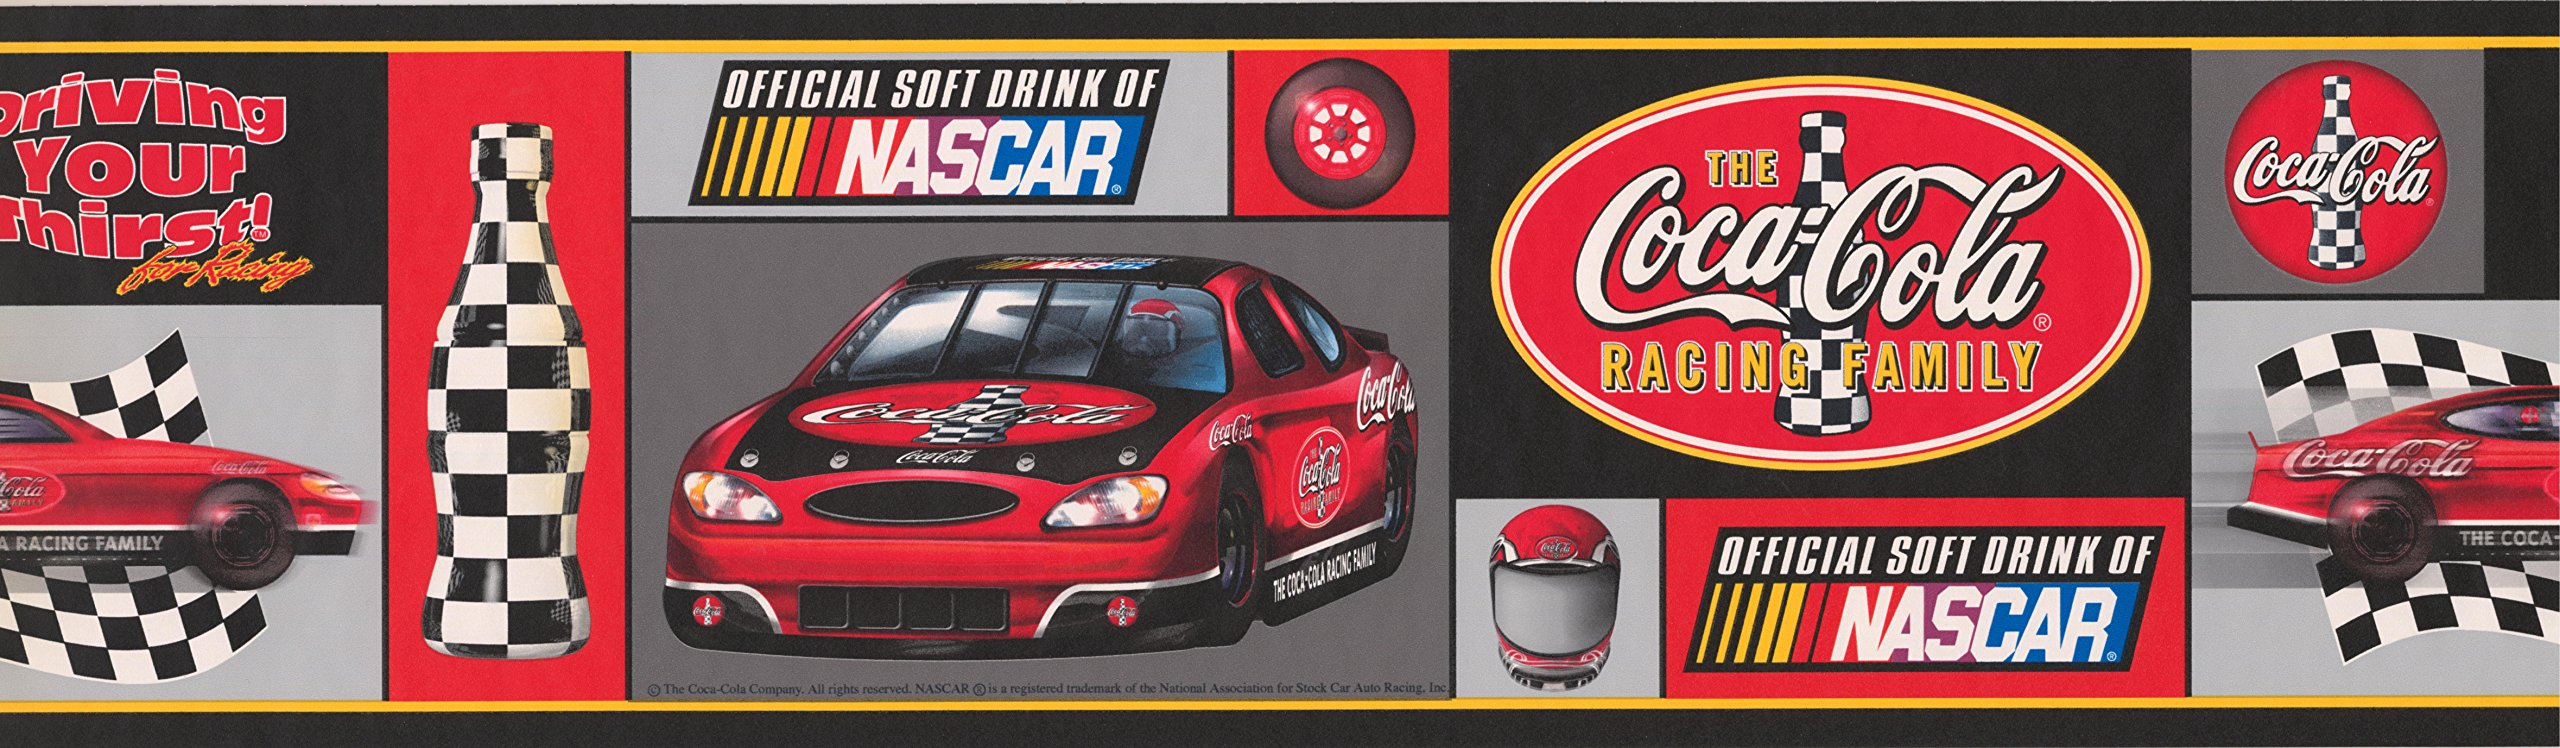 Coca-cola Nascar Wallpaper Border